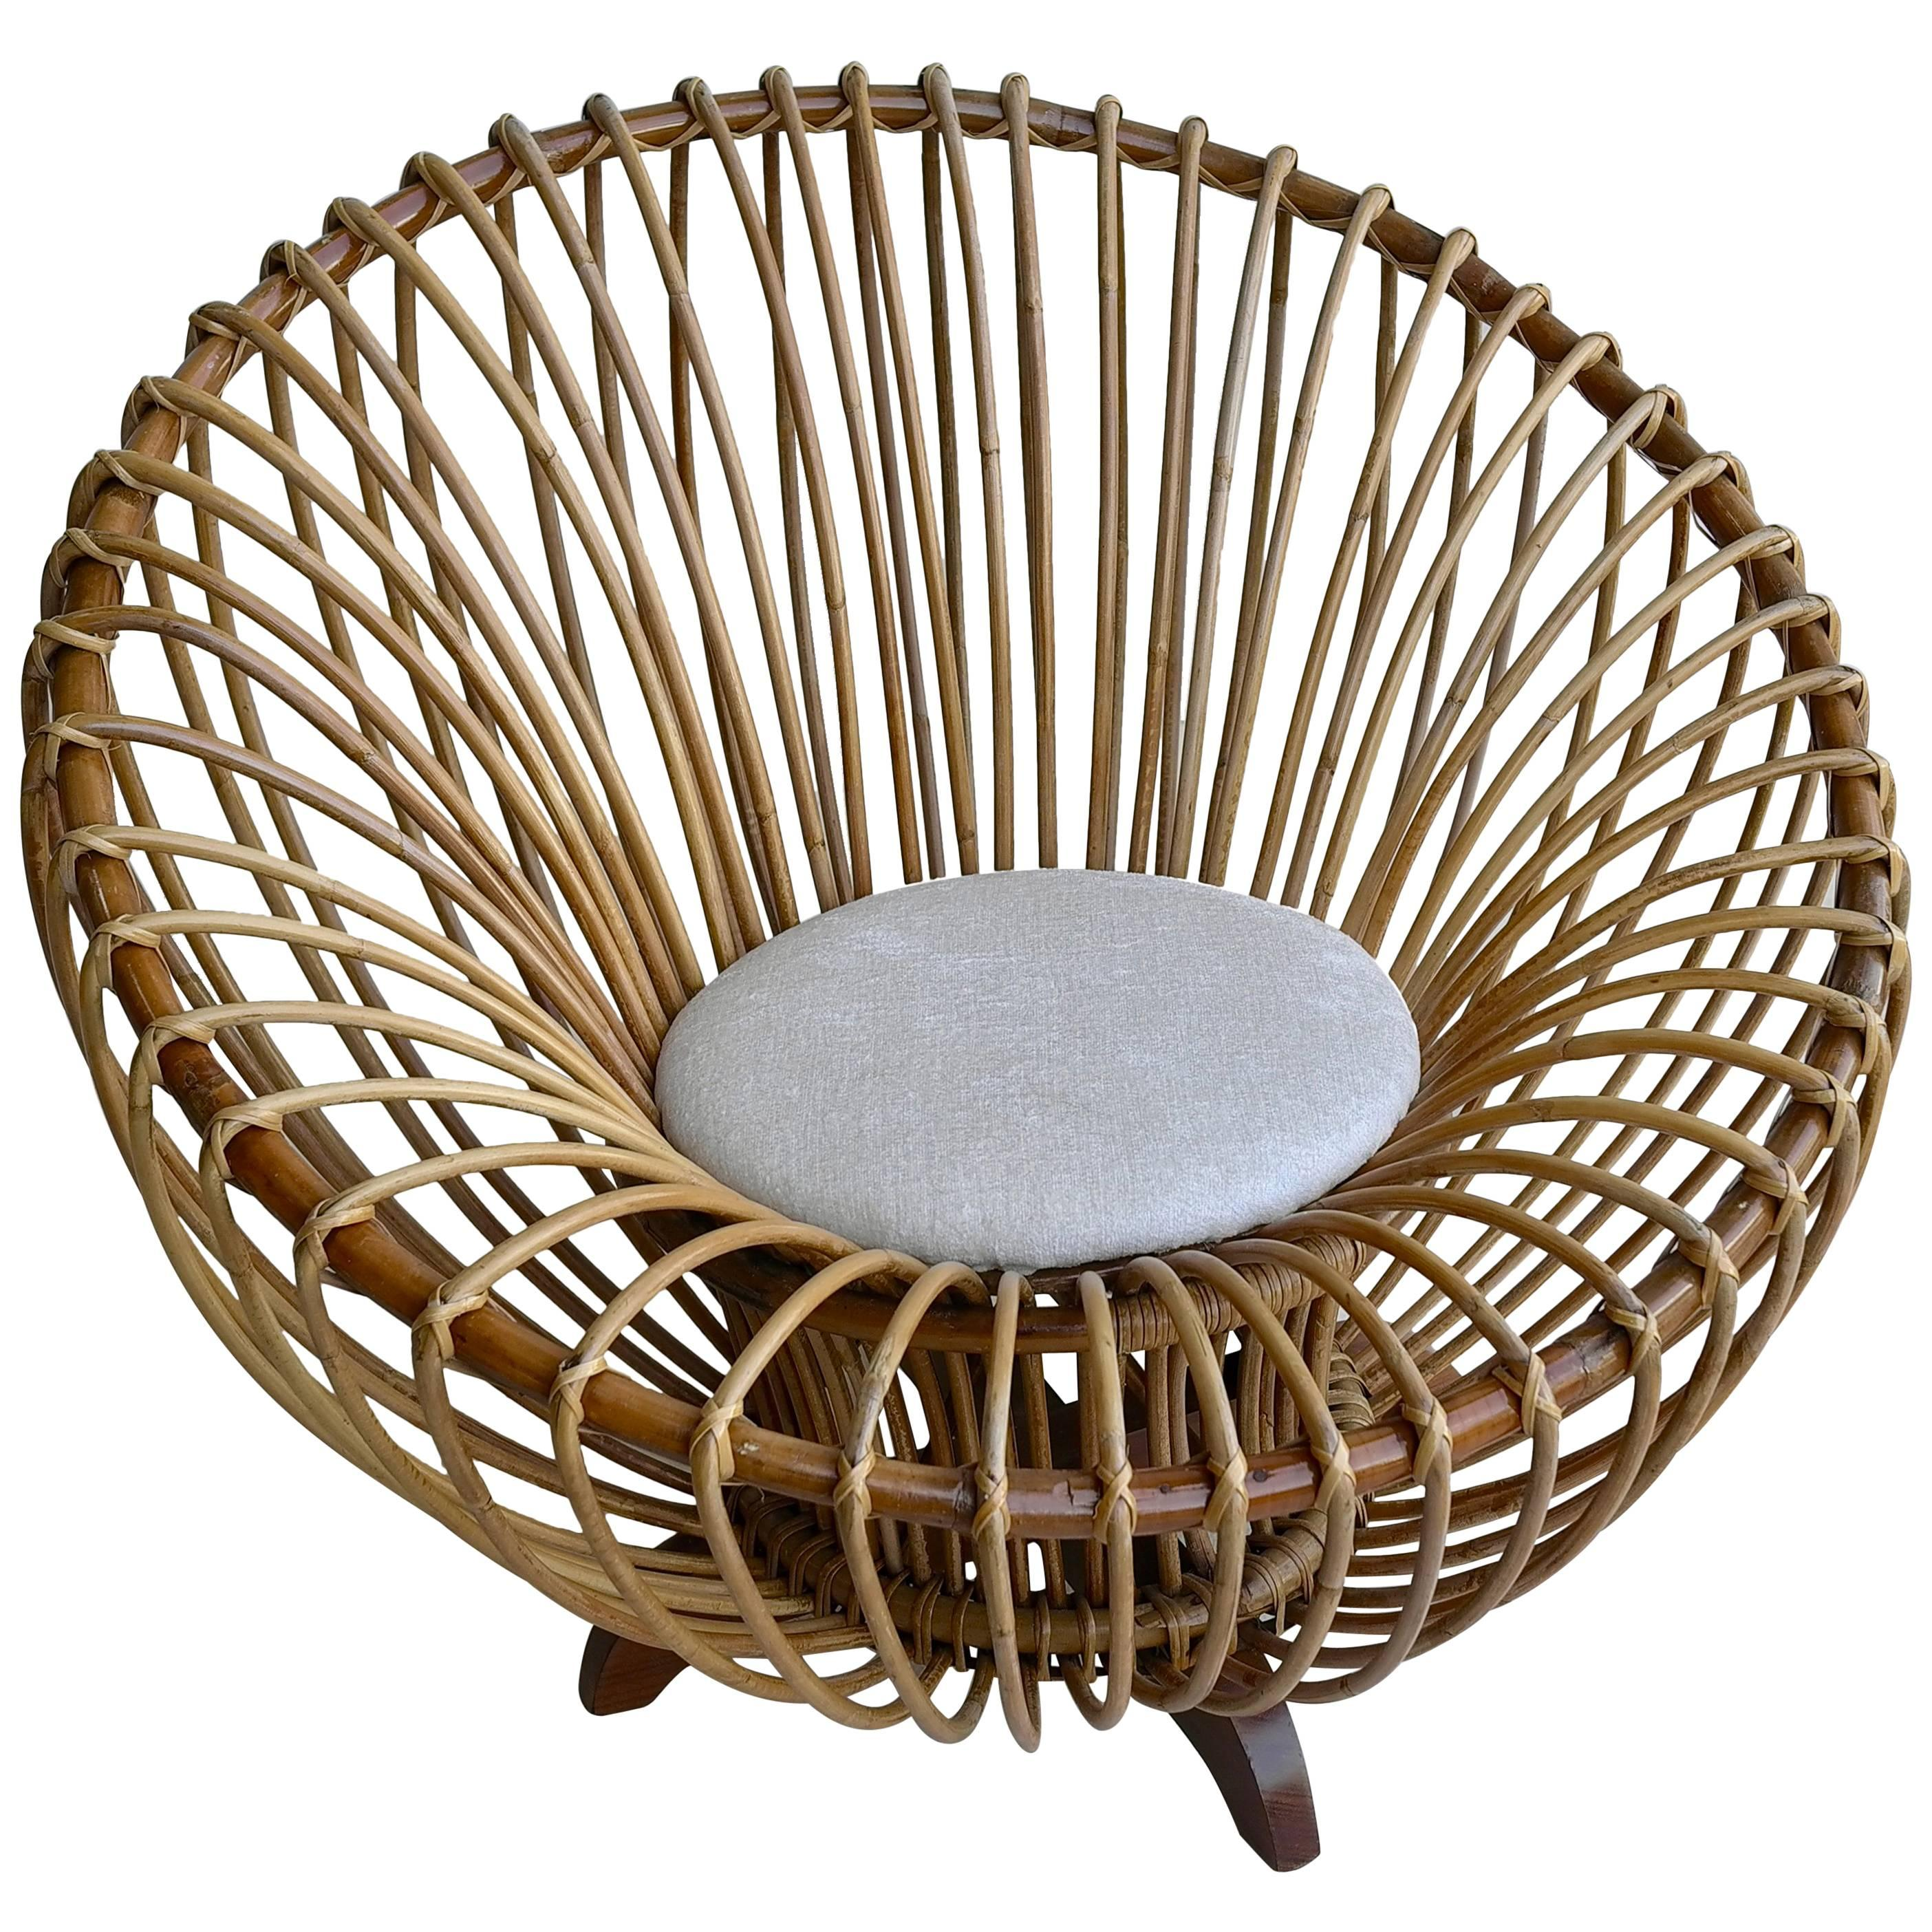 Elegant Round Bamboo Lounge Chair in Style of Franco Albini, Italy, 1950s